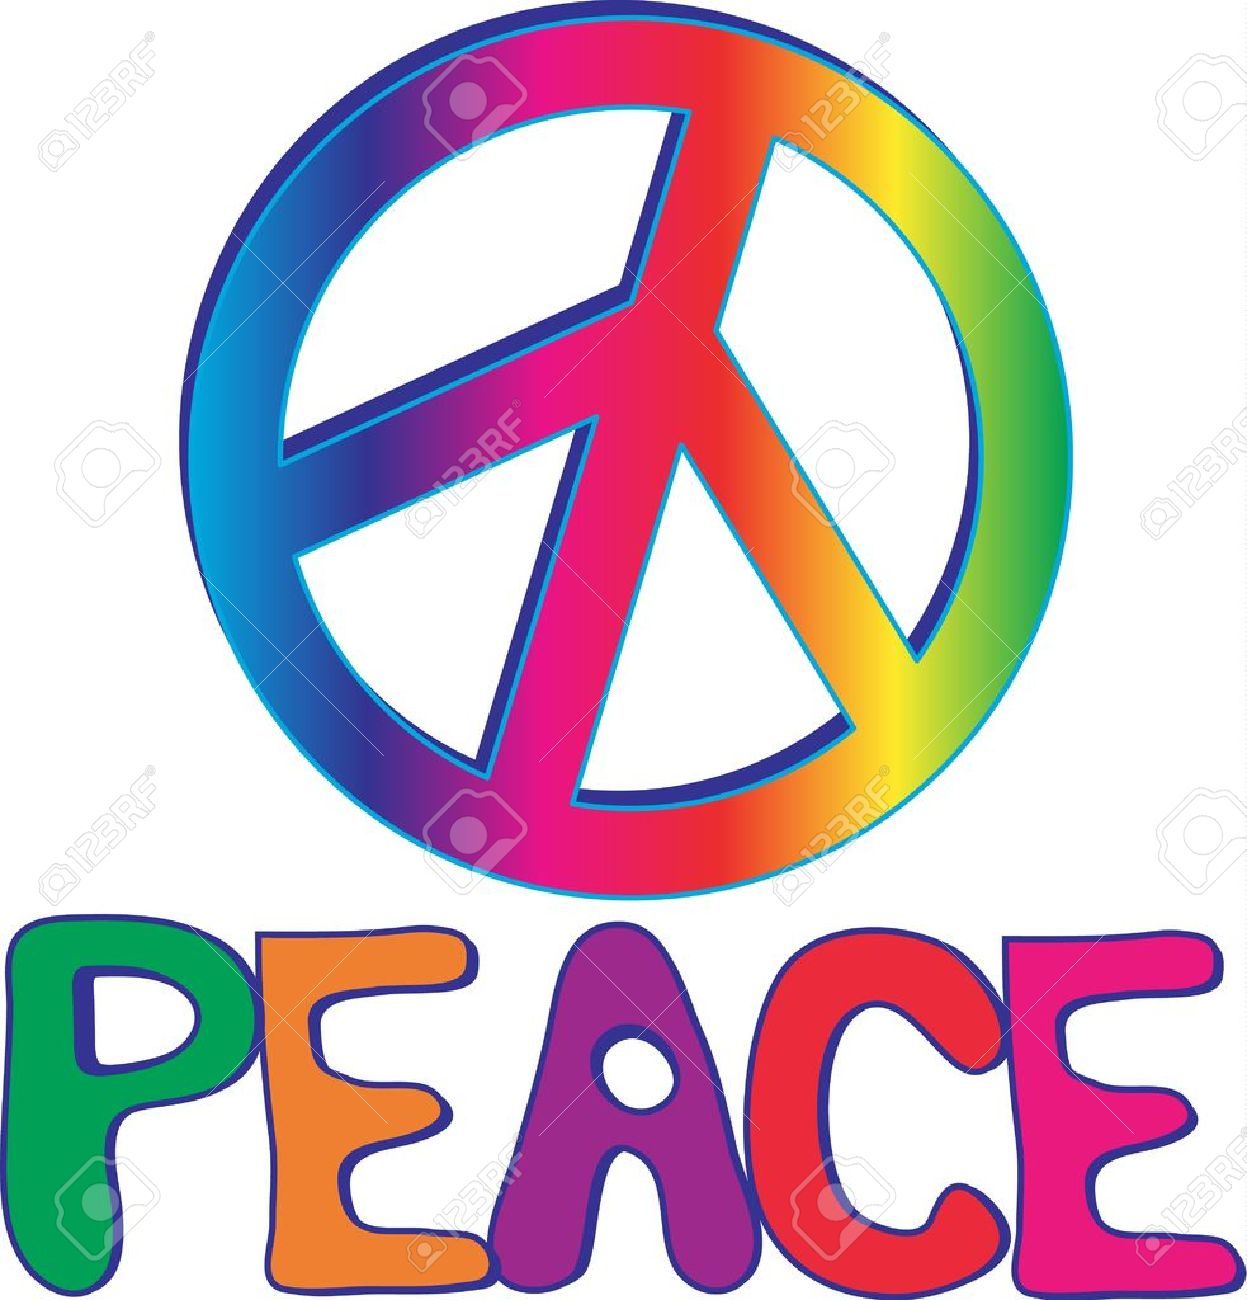 peace text with peace sign royalty free cliparts vectors and stock rh 123rf com vector peace sign fingers peace sign vector art